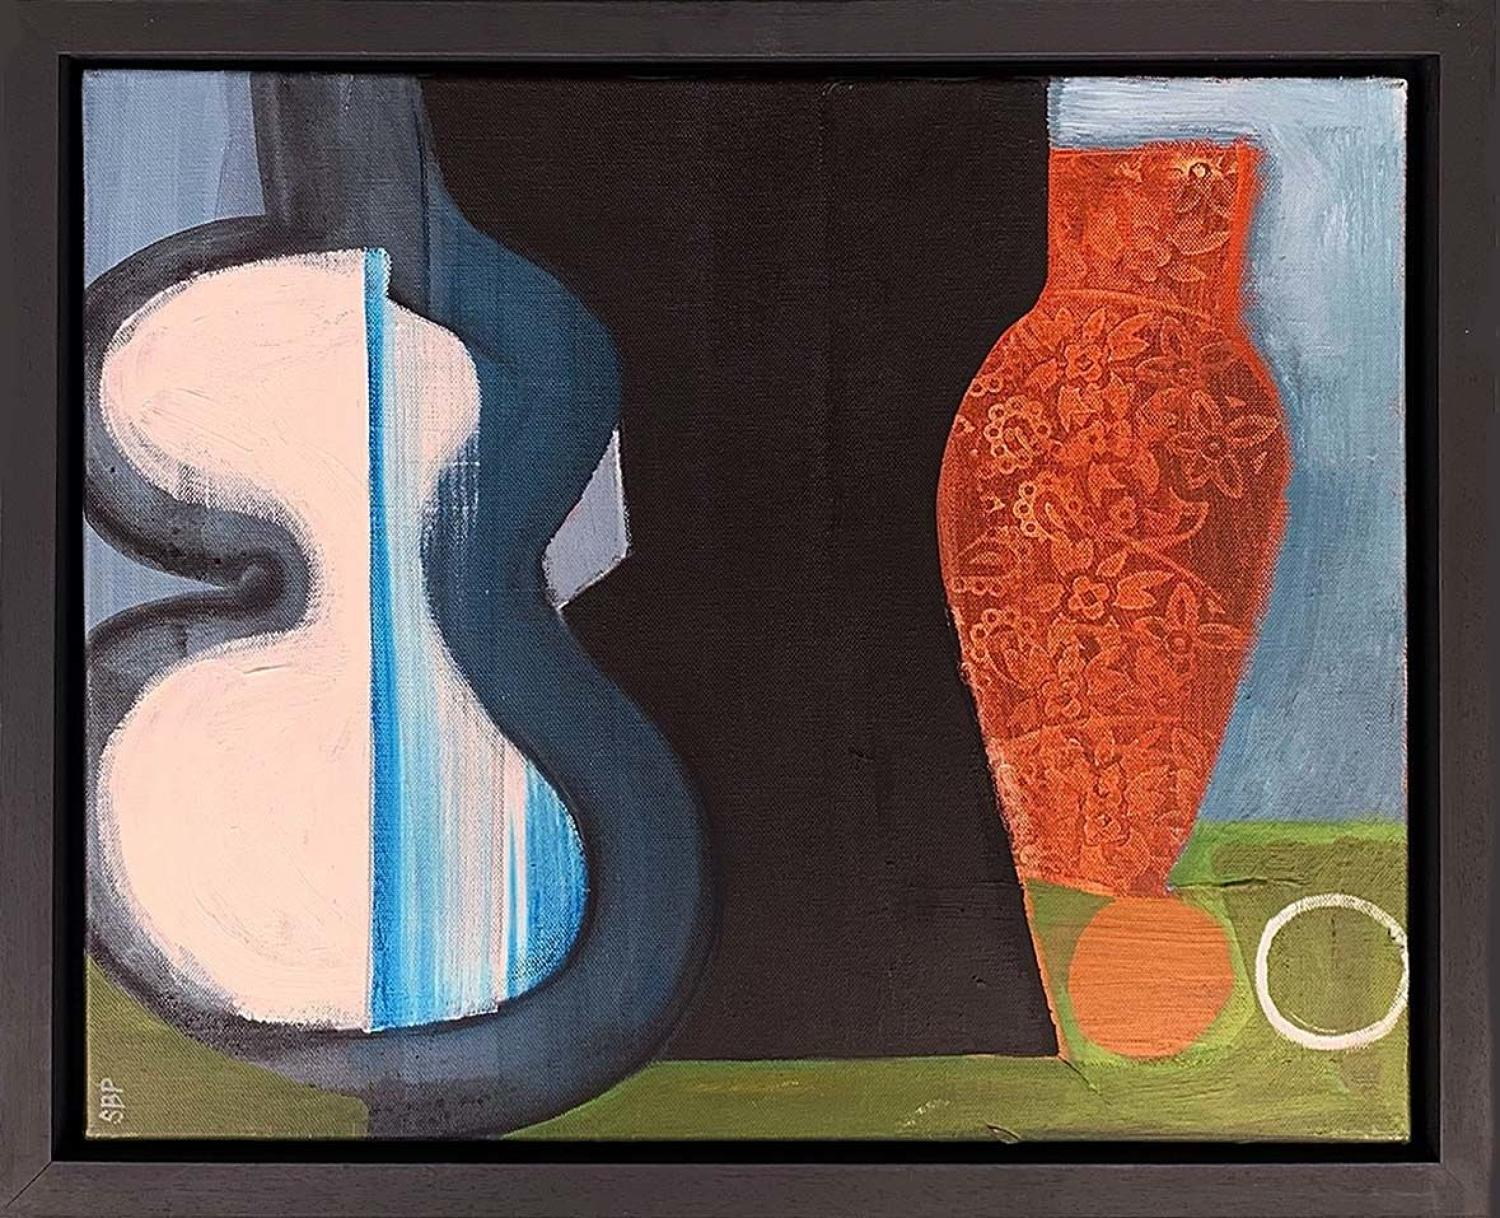 Sarah Baddon Price - Still Life with Blue Vase, Bust and Guitar